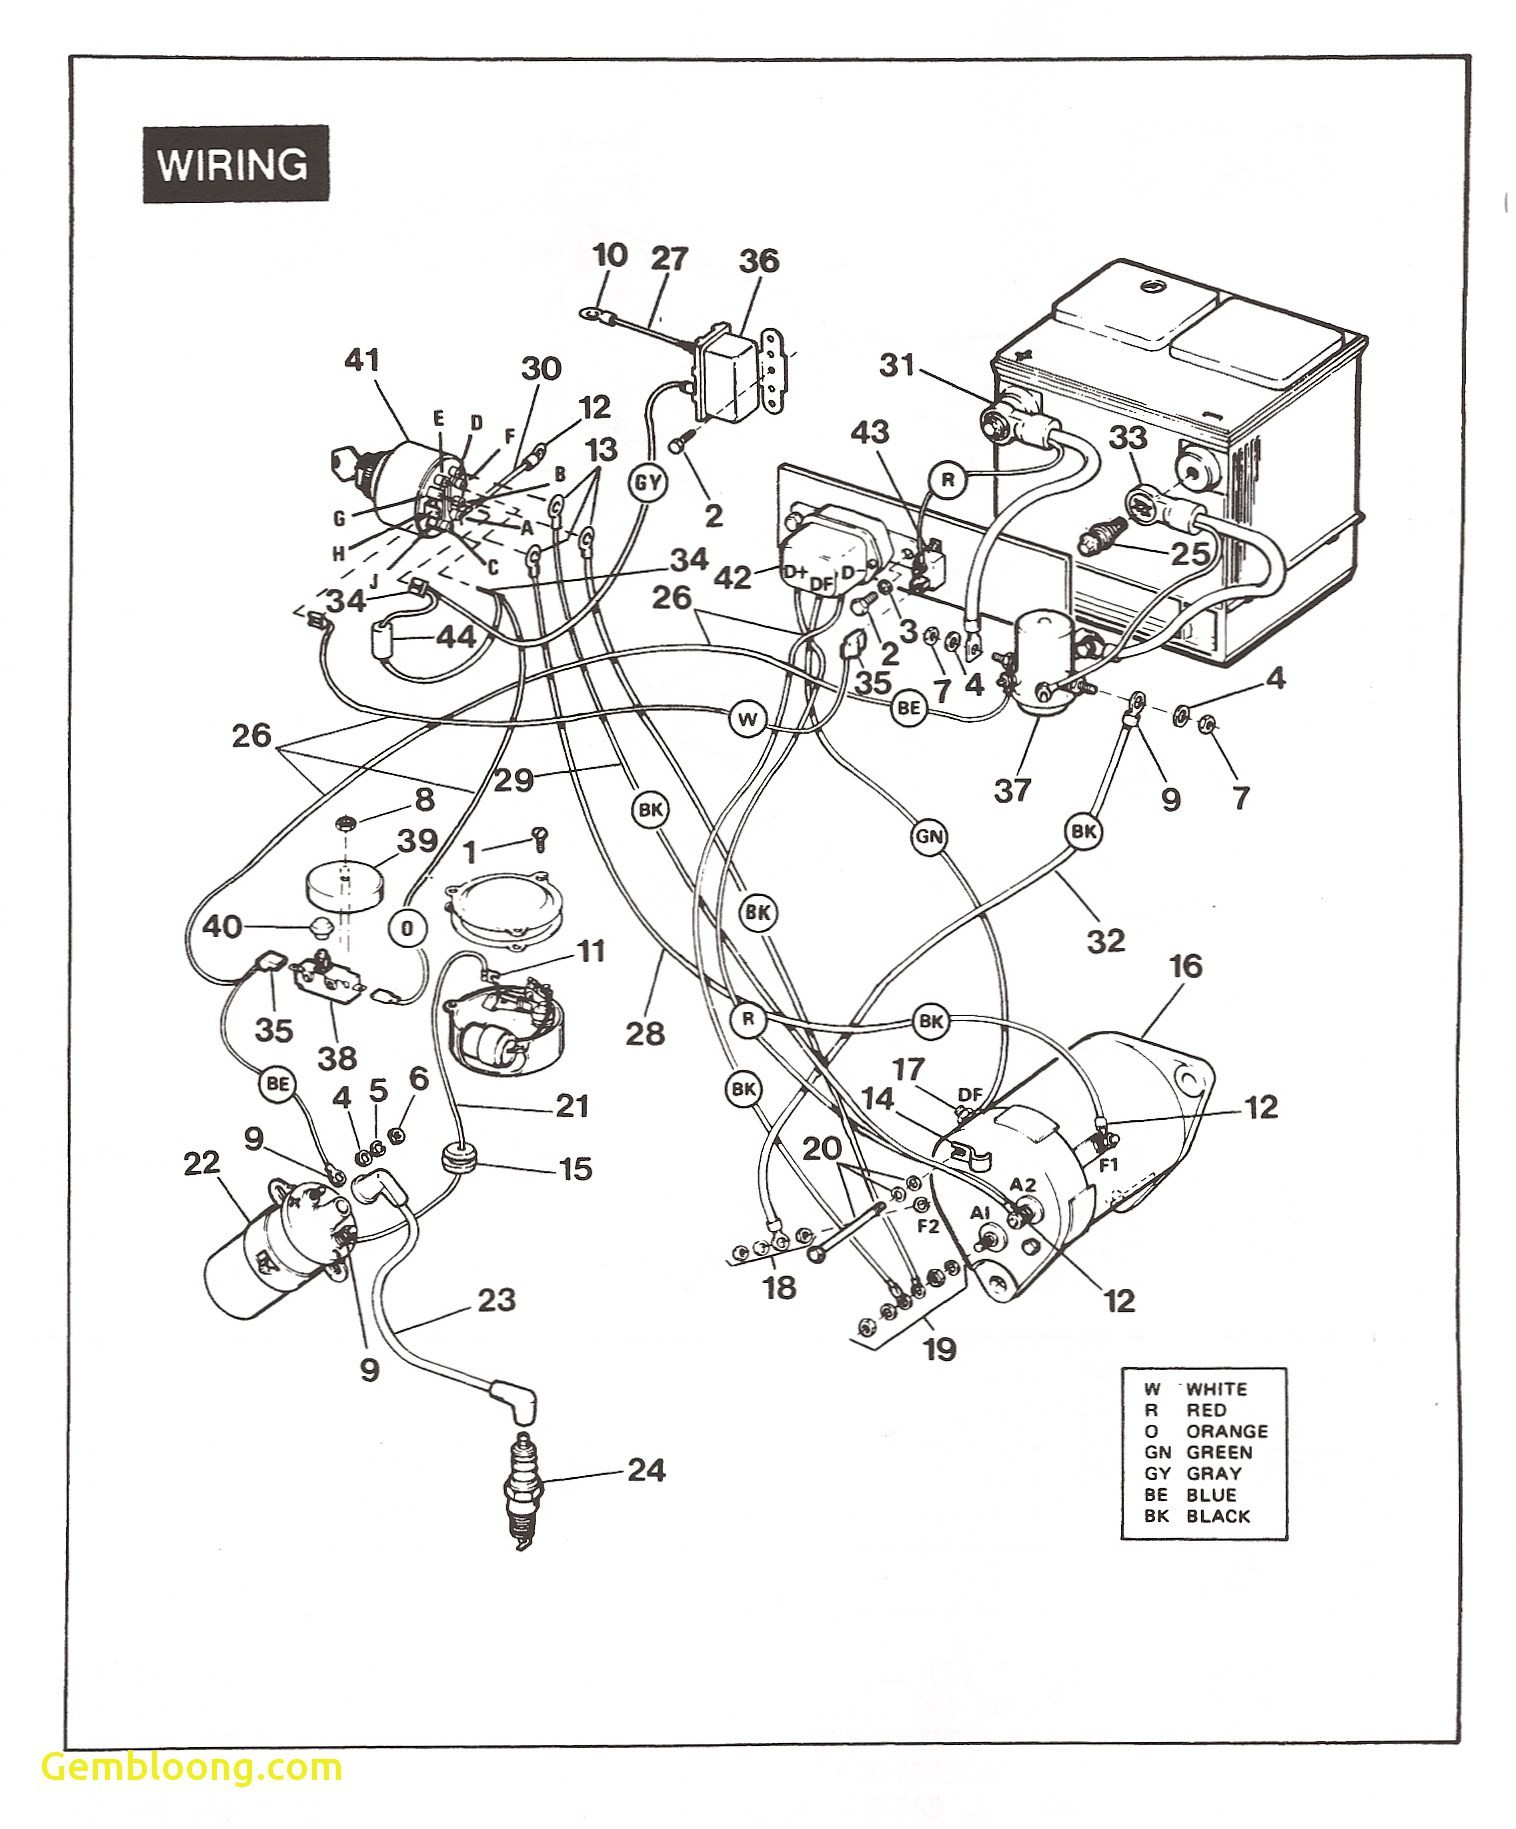 1989 club car ds wiring diagram schematic wiring diagram. Black Bedroom Furniture Sets. Home Design Ideas